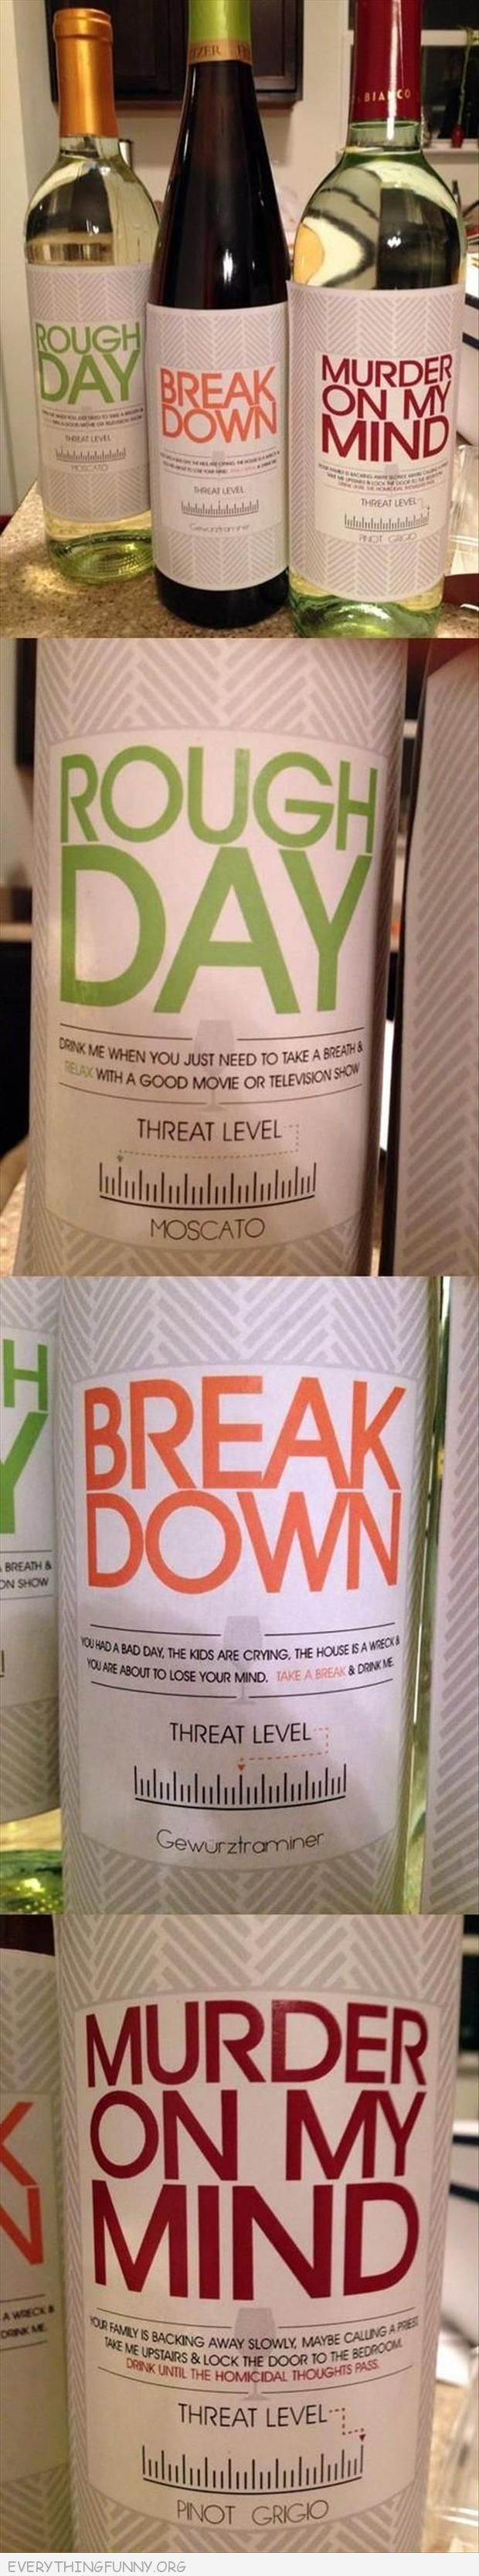 funny wine bottle labels break down rough day murder on my mind